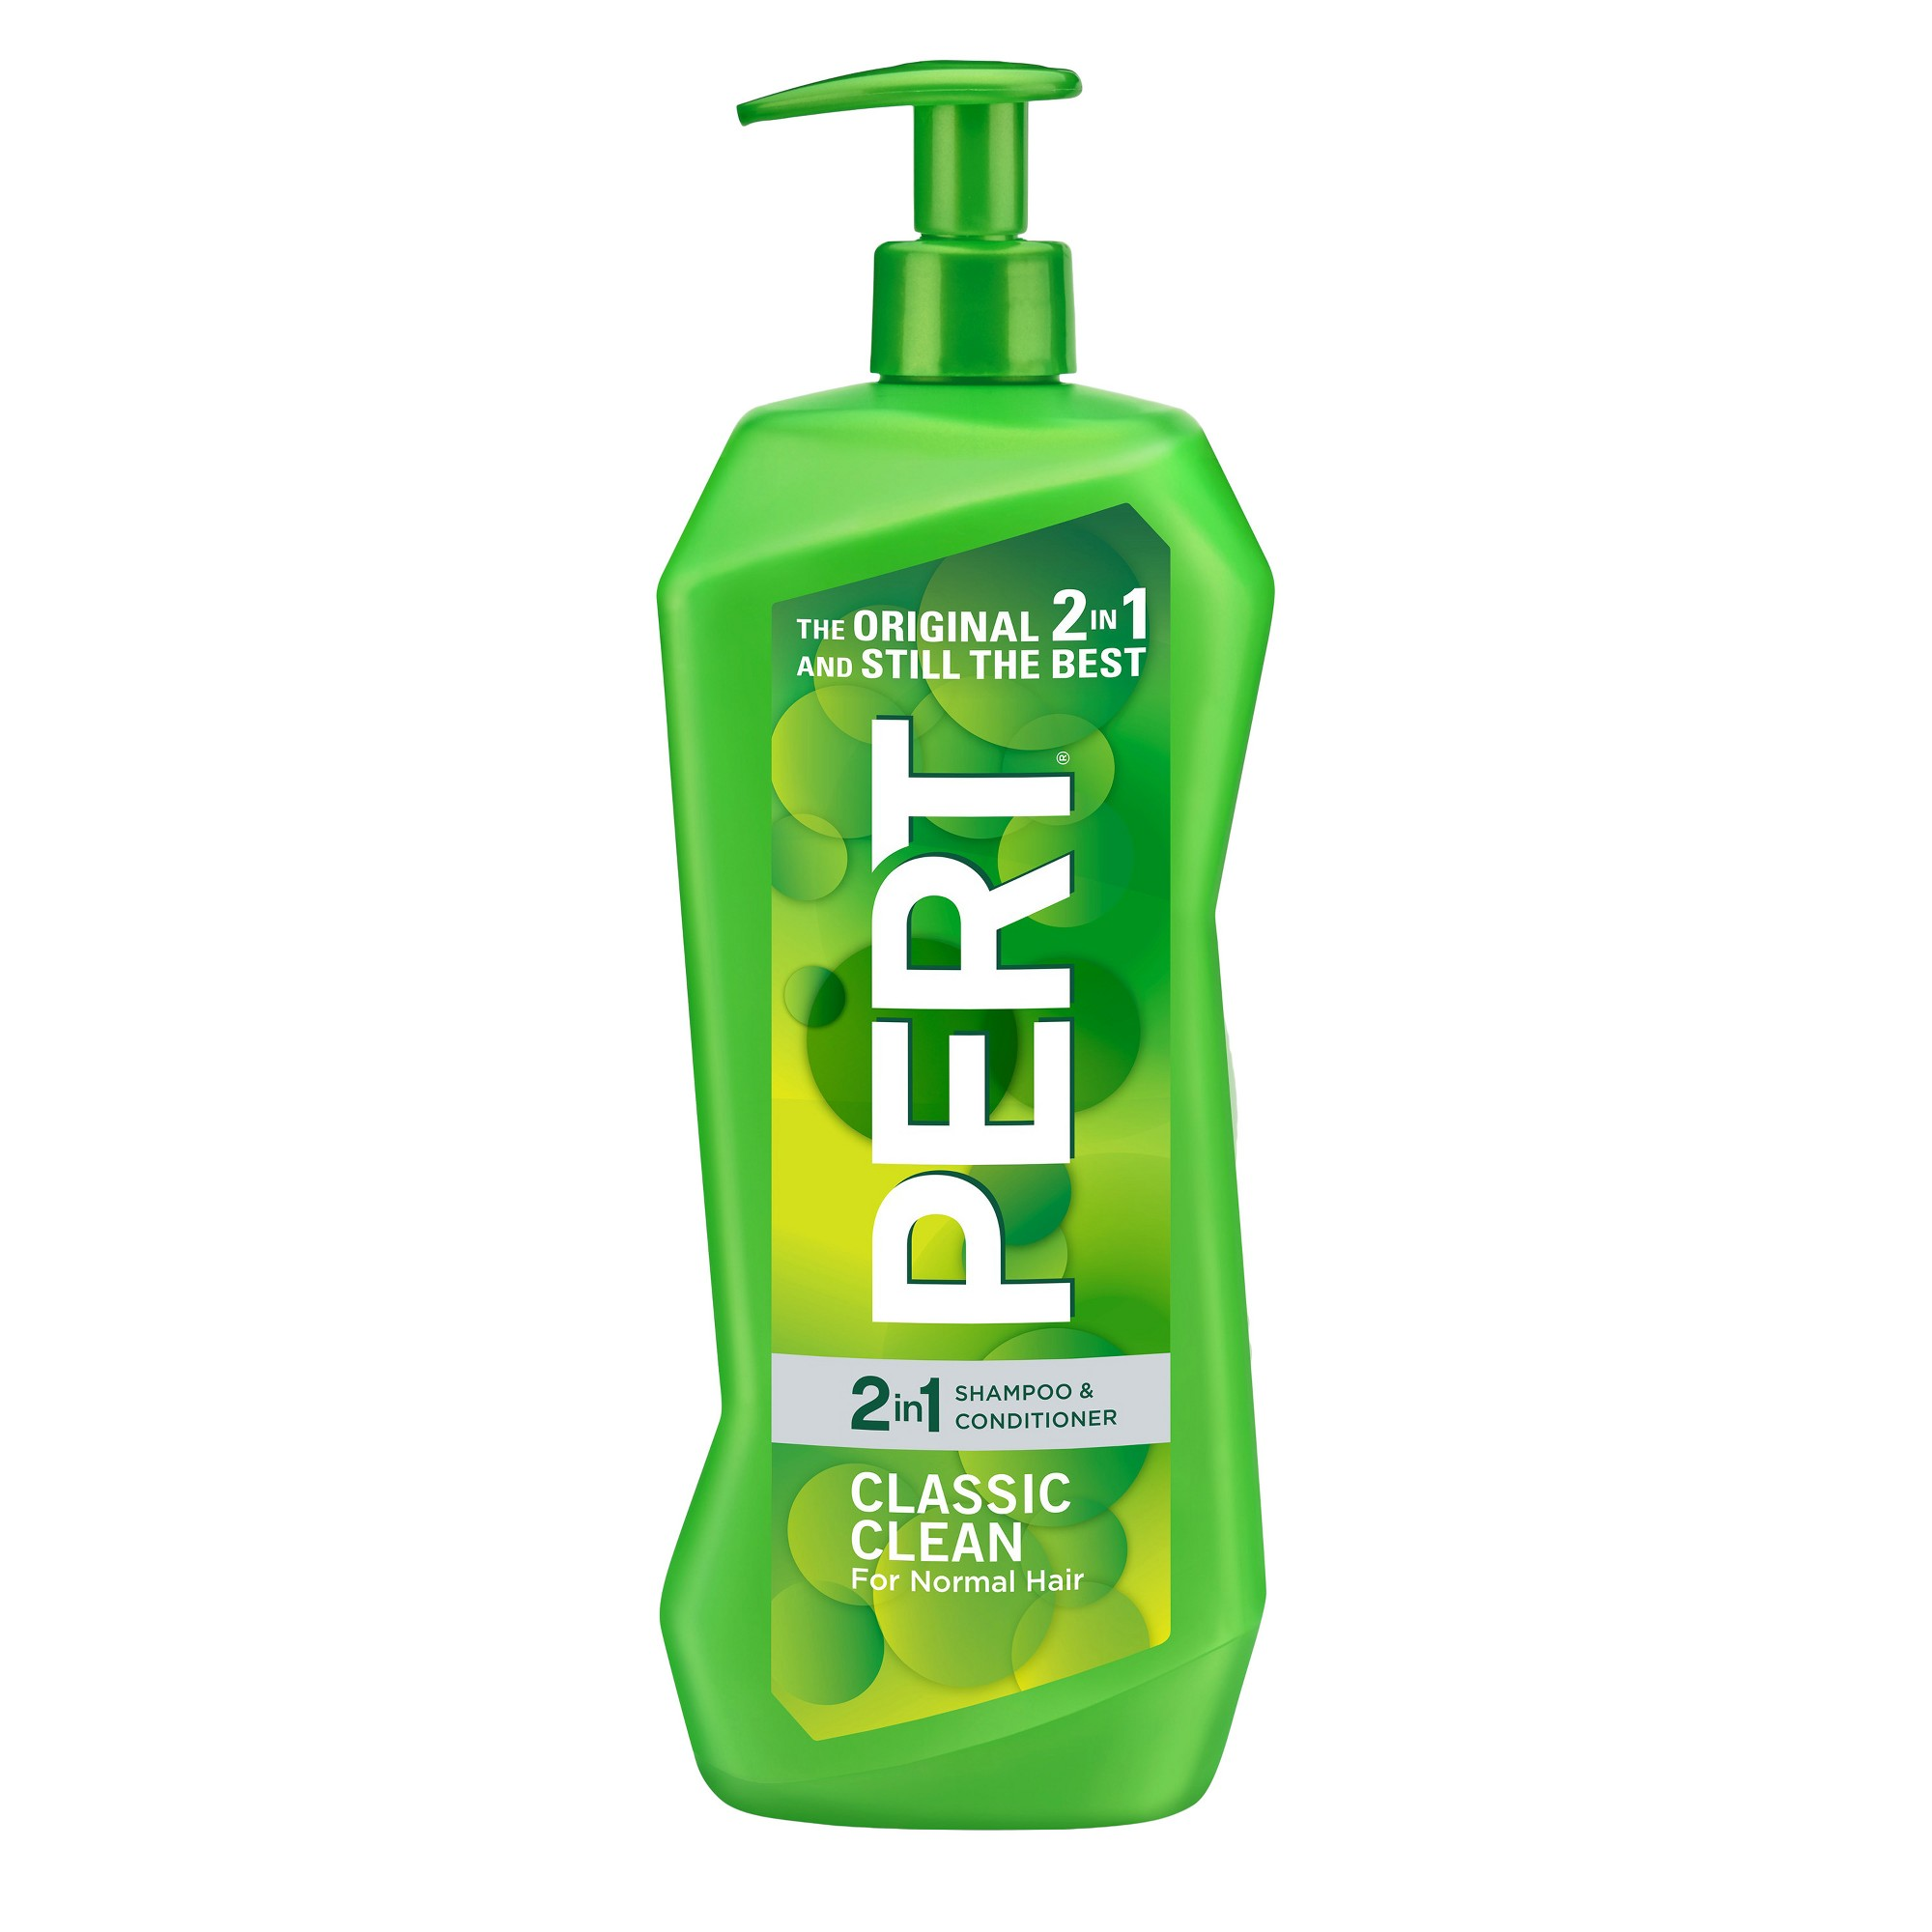 Pert Plus Classic Clean 2 in 1 Shampoo and Conditioner - 33.8 fl oz